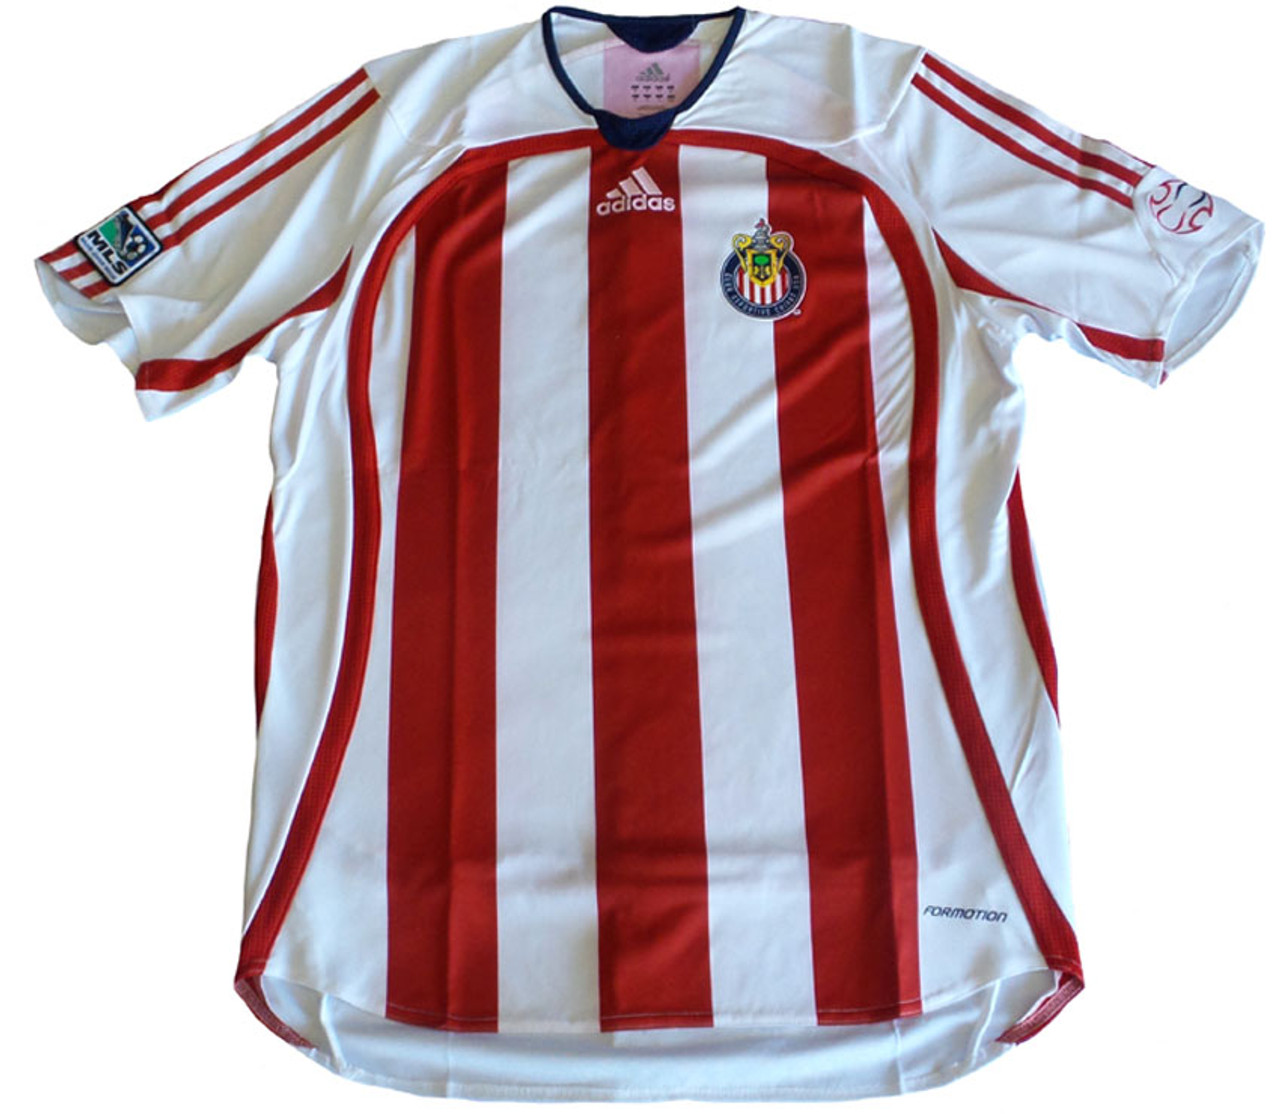 c86205b5d36 ADIDAS CHIVAS USA 2006 AWAY PLAYERS VERSION JERSEY - Soccer Plus